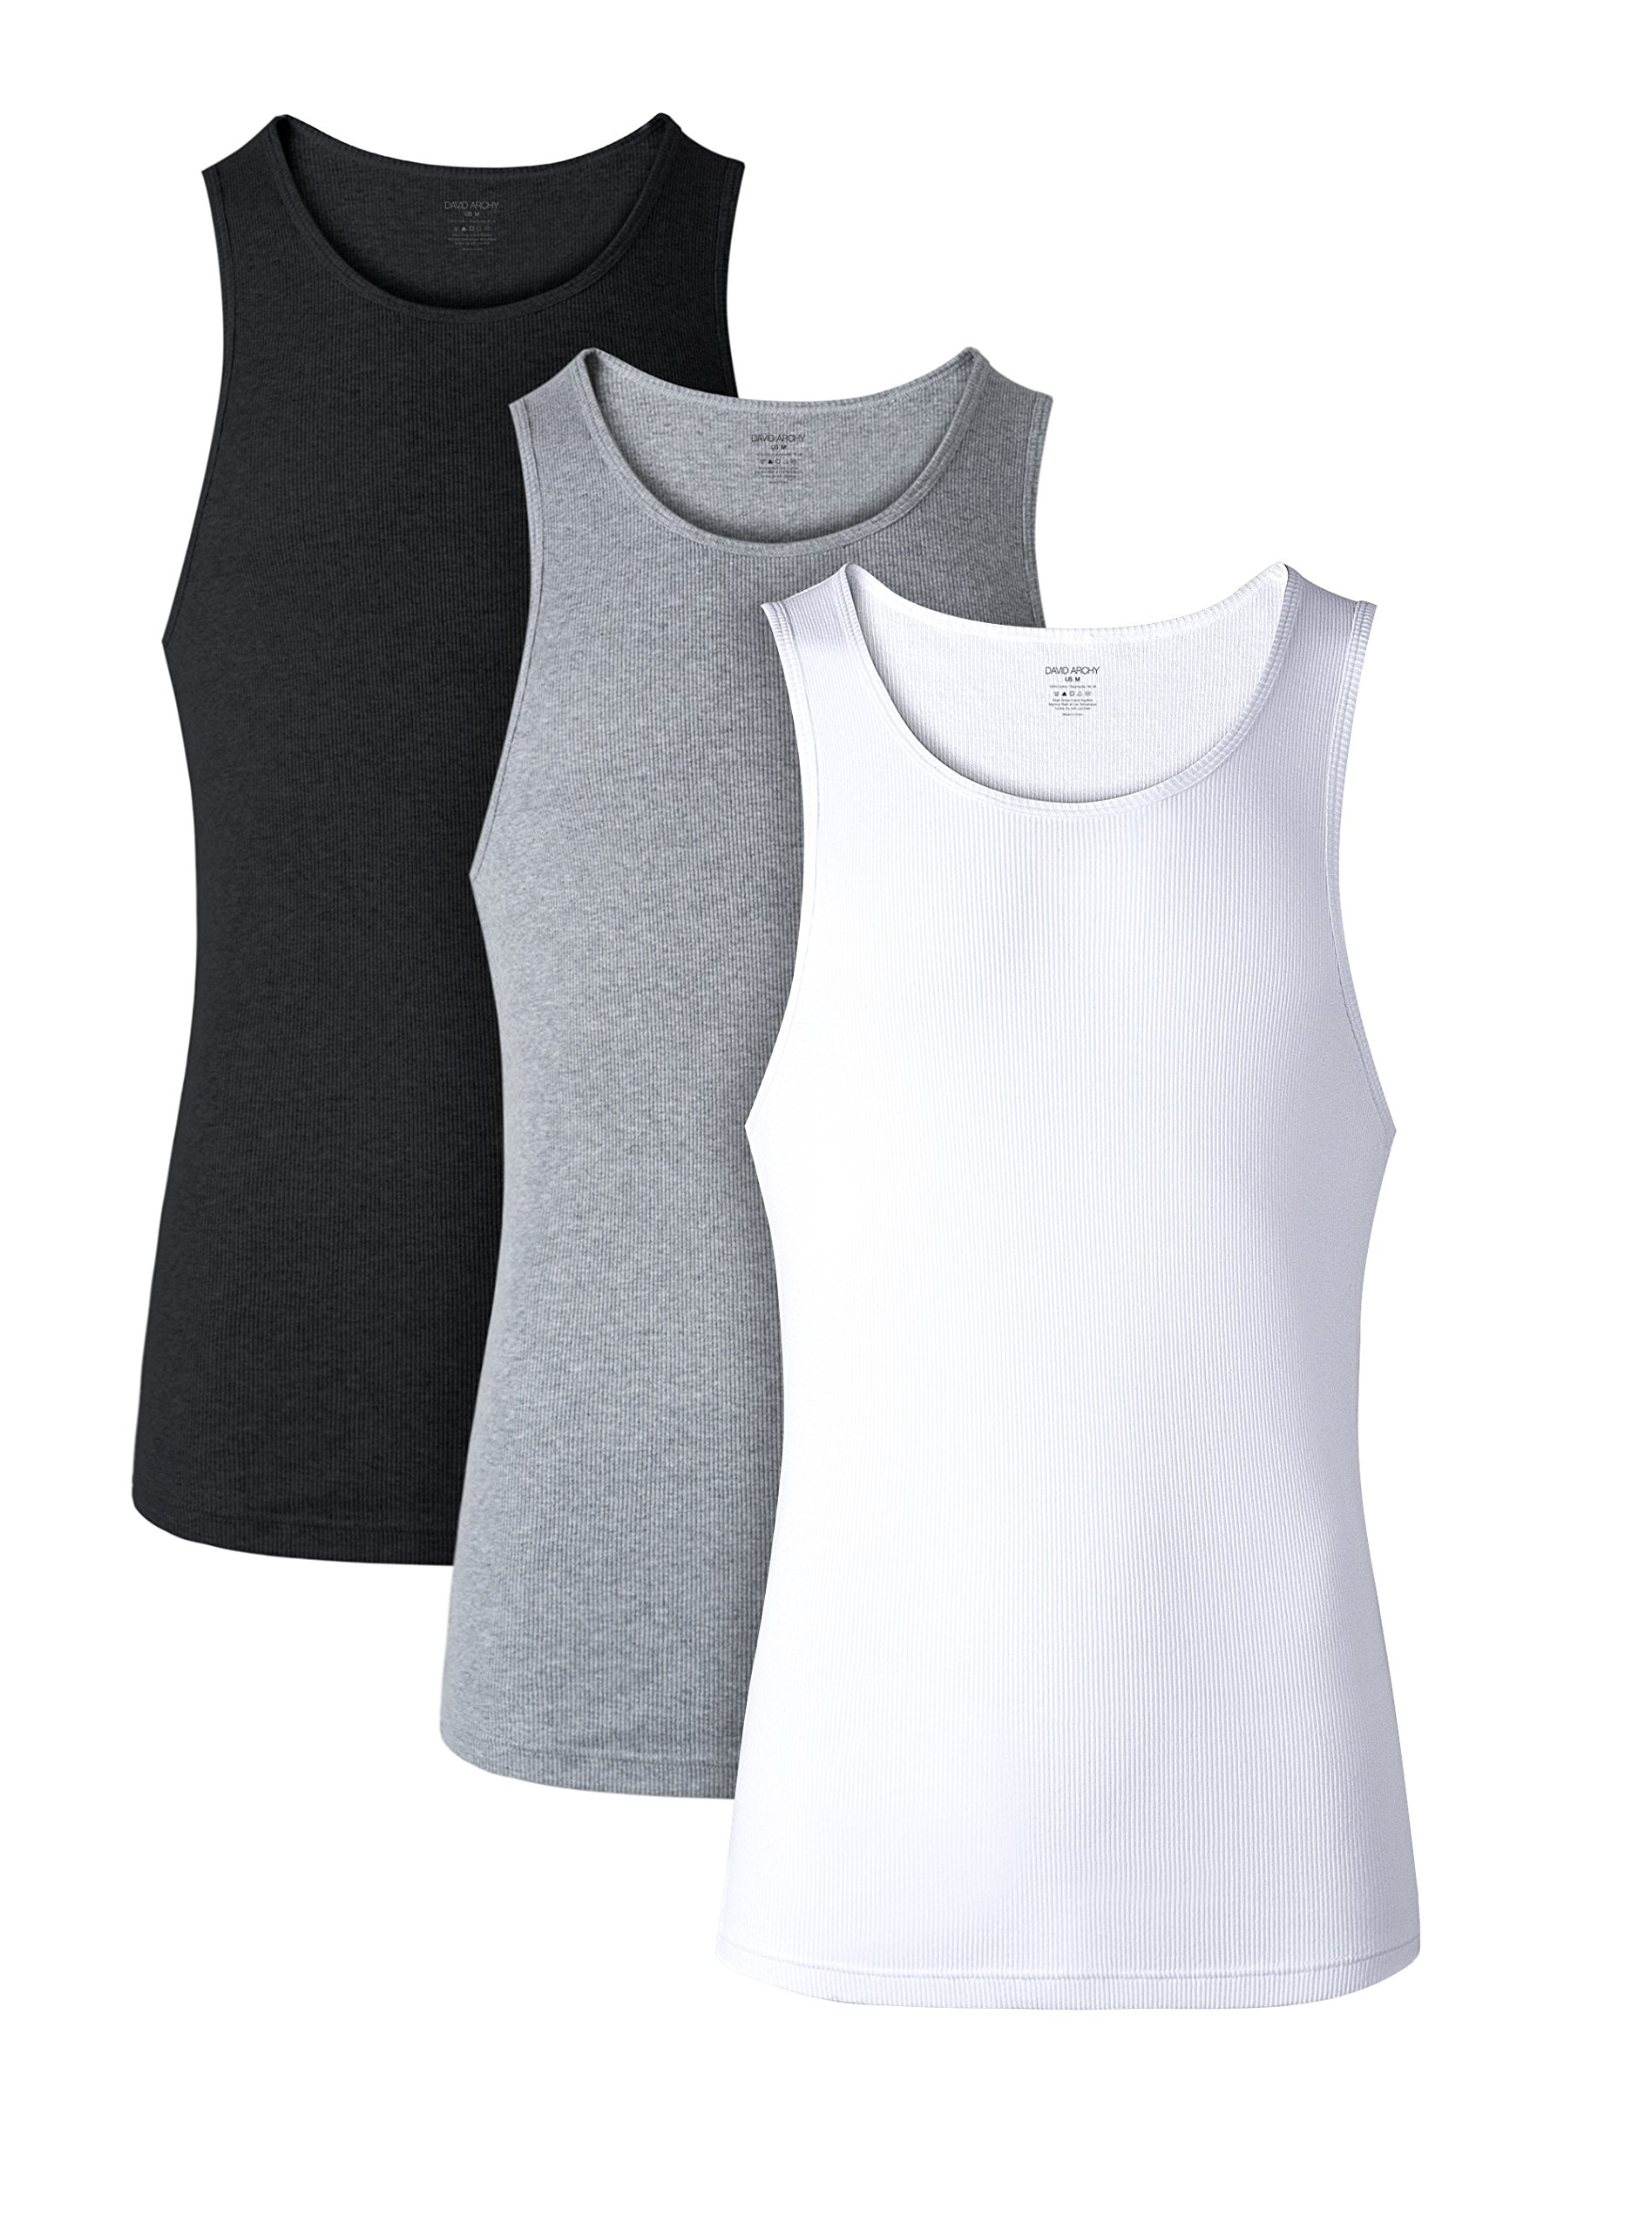 David Archy Men's 3 Pack Cotton Rib Tank Top A-Shirts Sleeveless Workout Undershirts(Black/White/Heather Dark Gray,S)